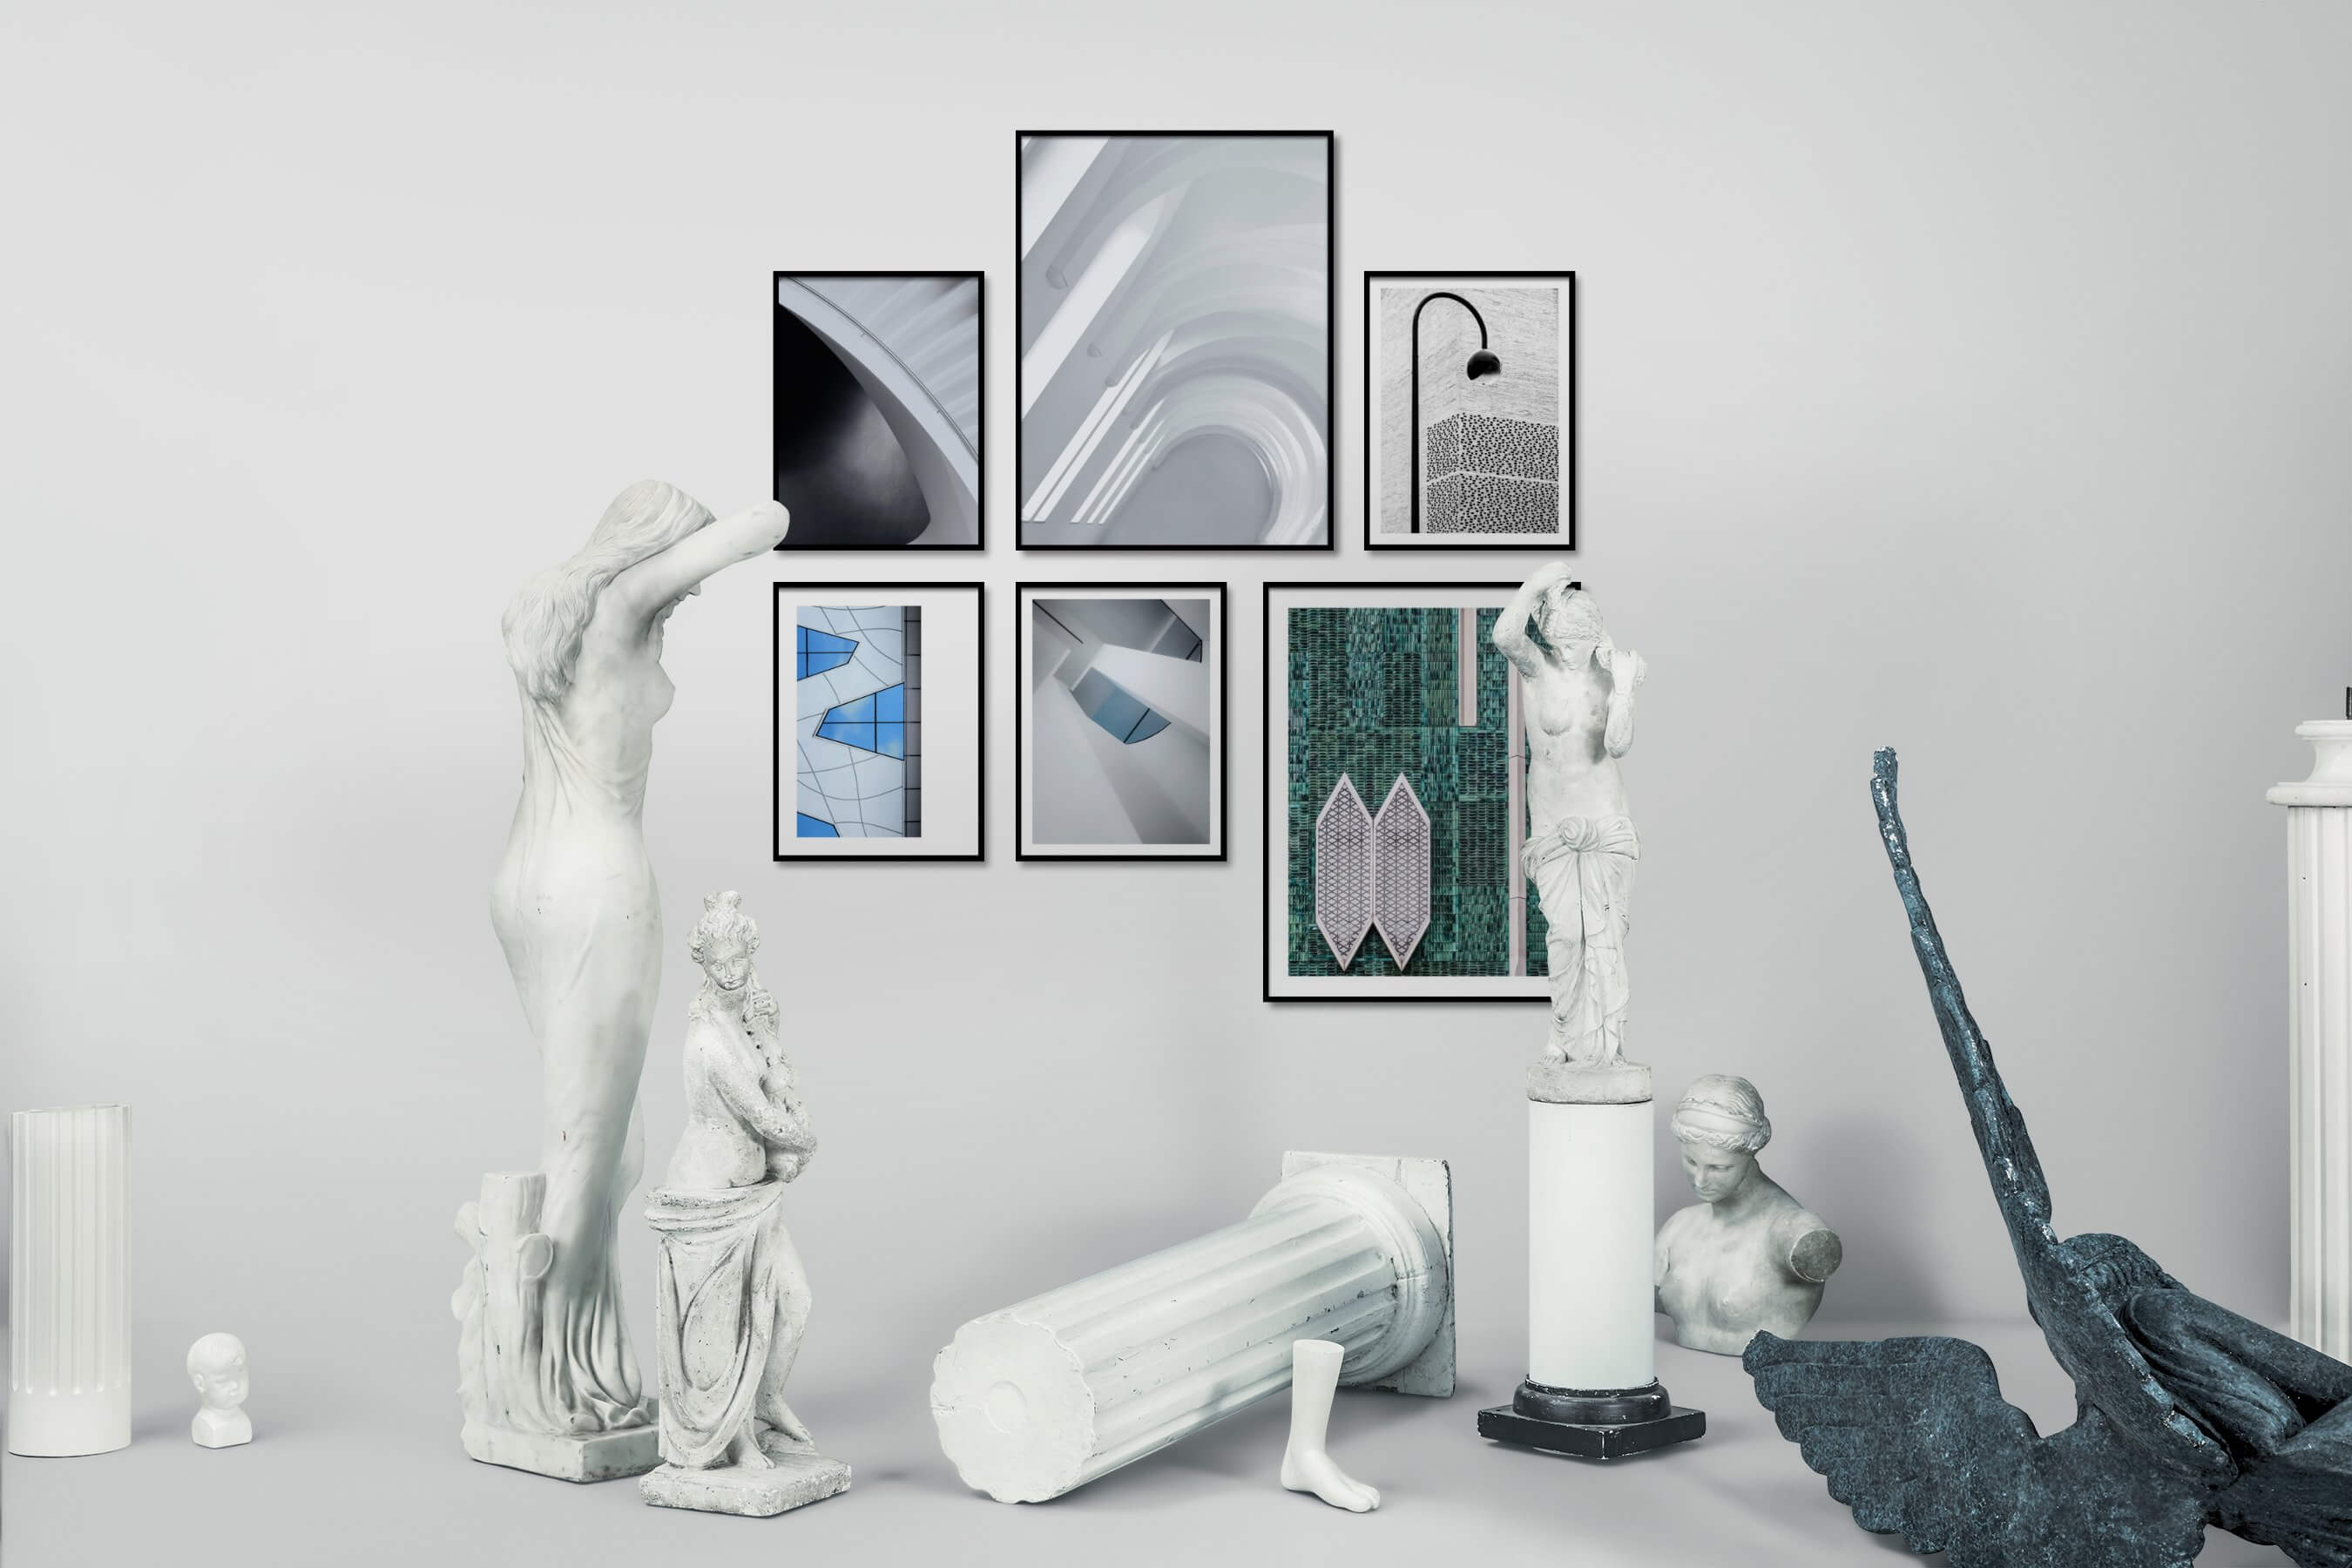 Gallery wall idea with six framed pictures arranged on a wall depicting For the Moderate, For the Maximalist, Black & White, For the Minimalist, and City Life